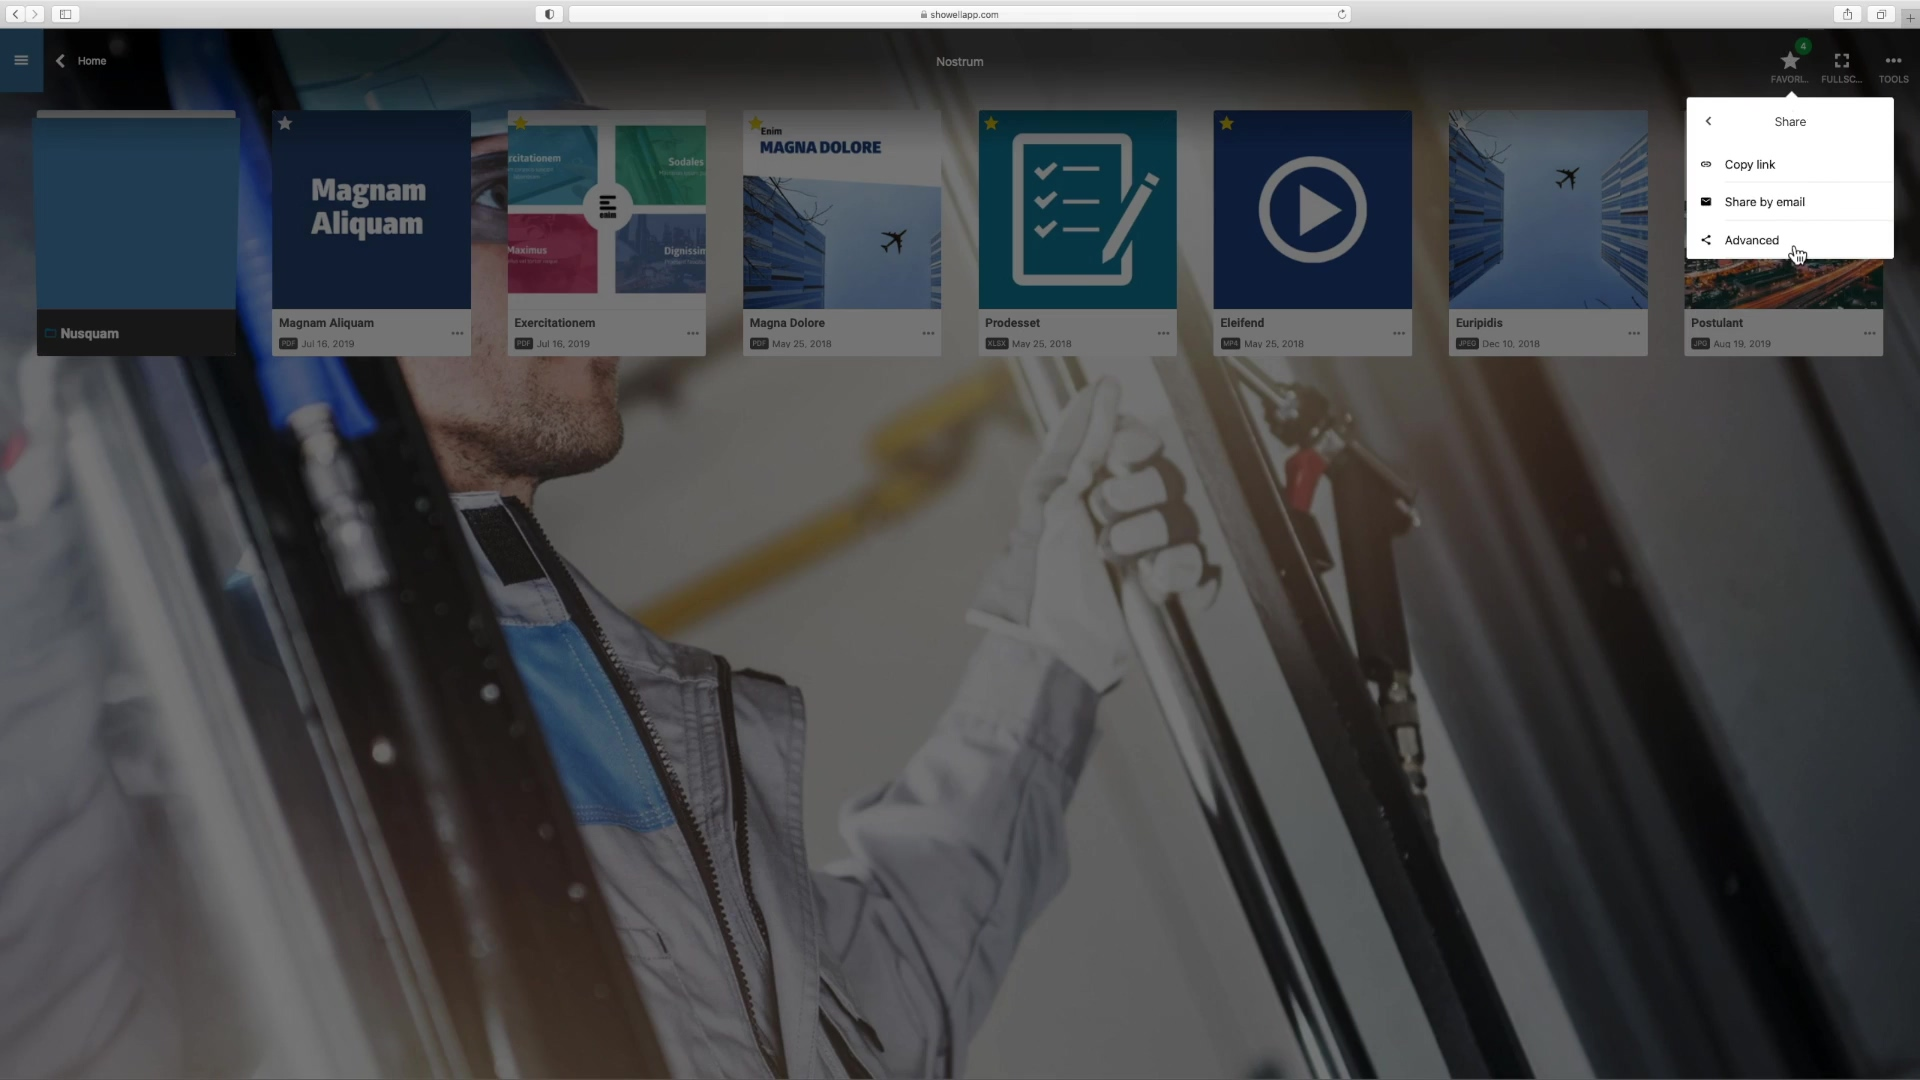 How to share multiple documents